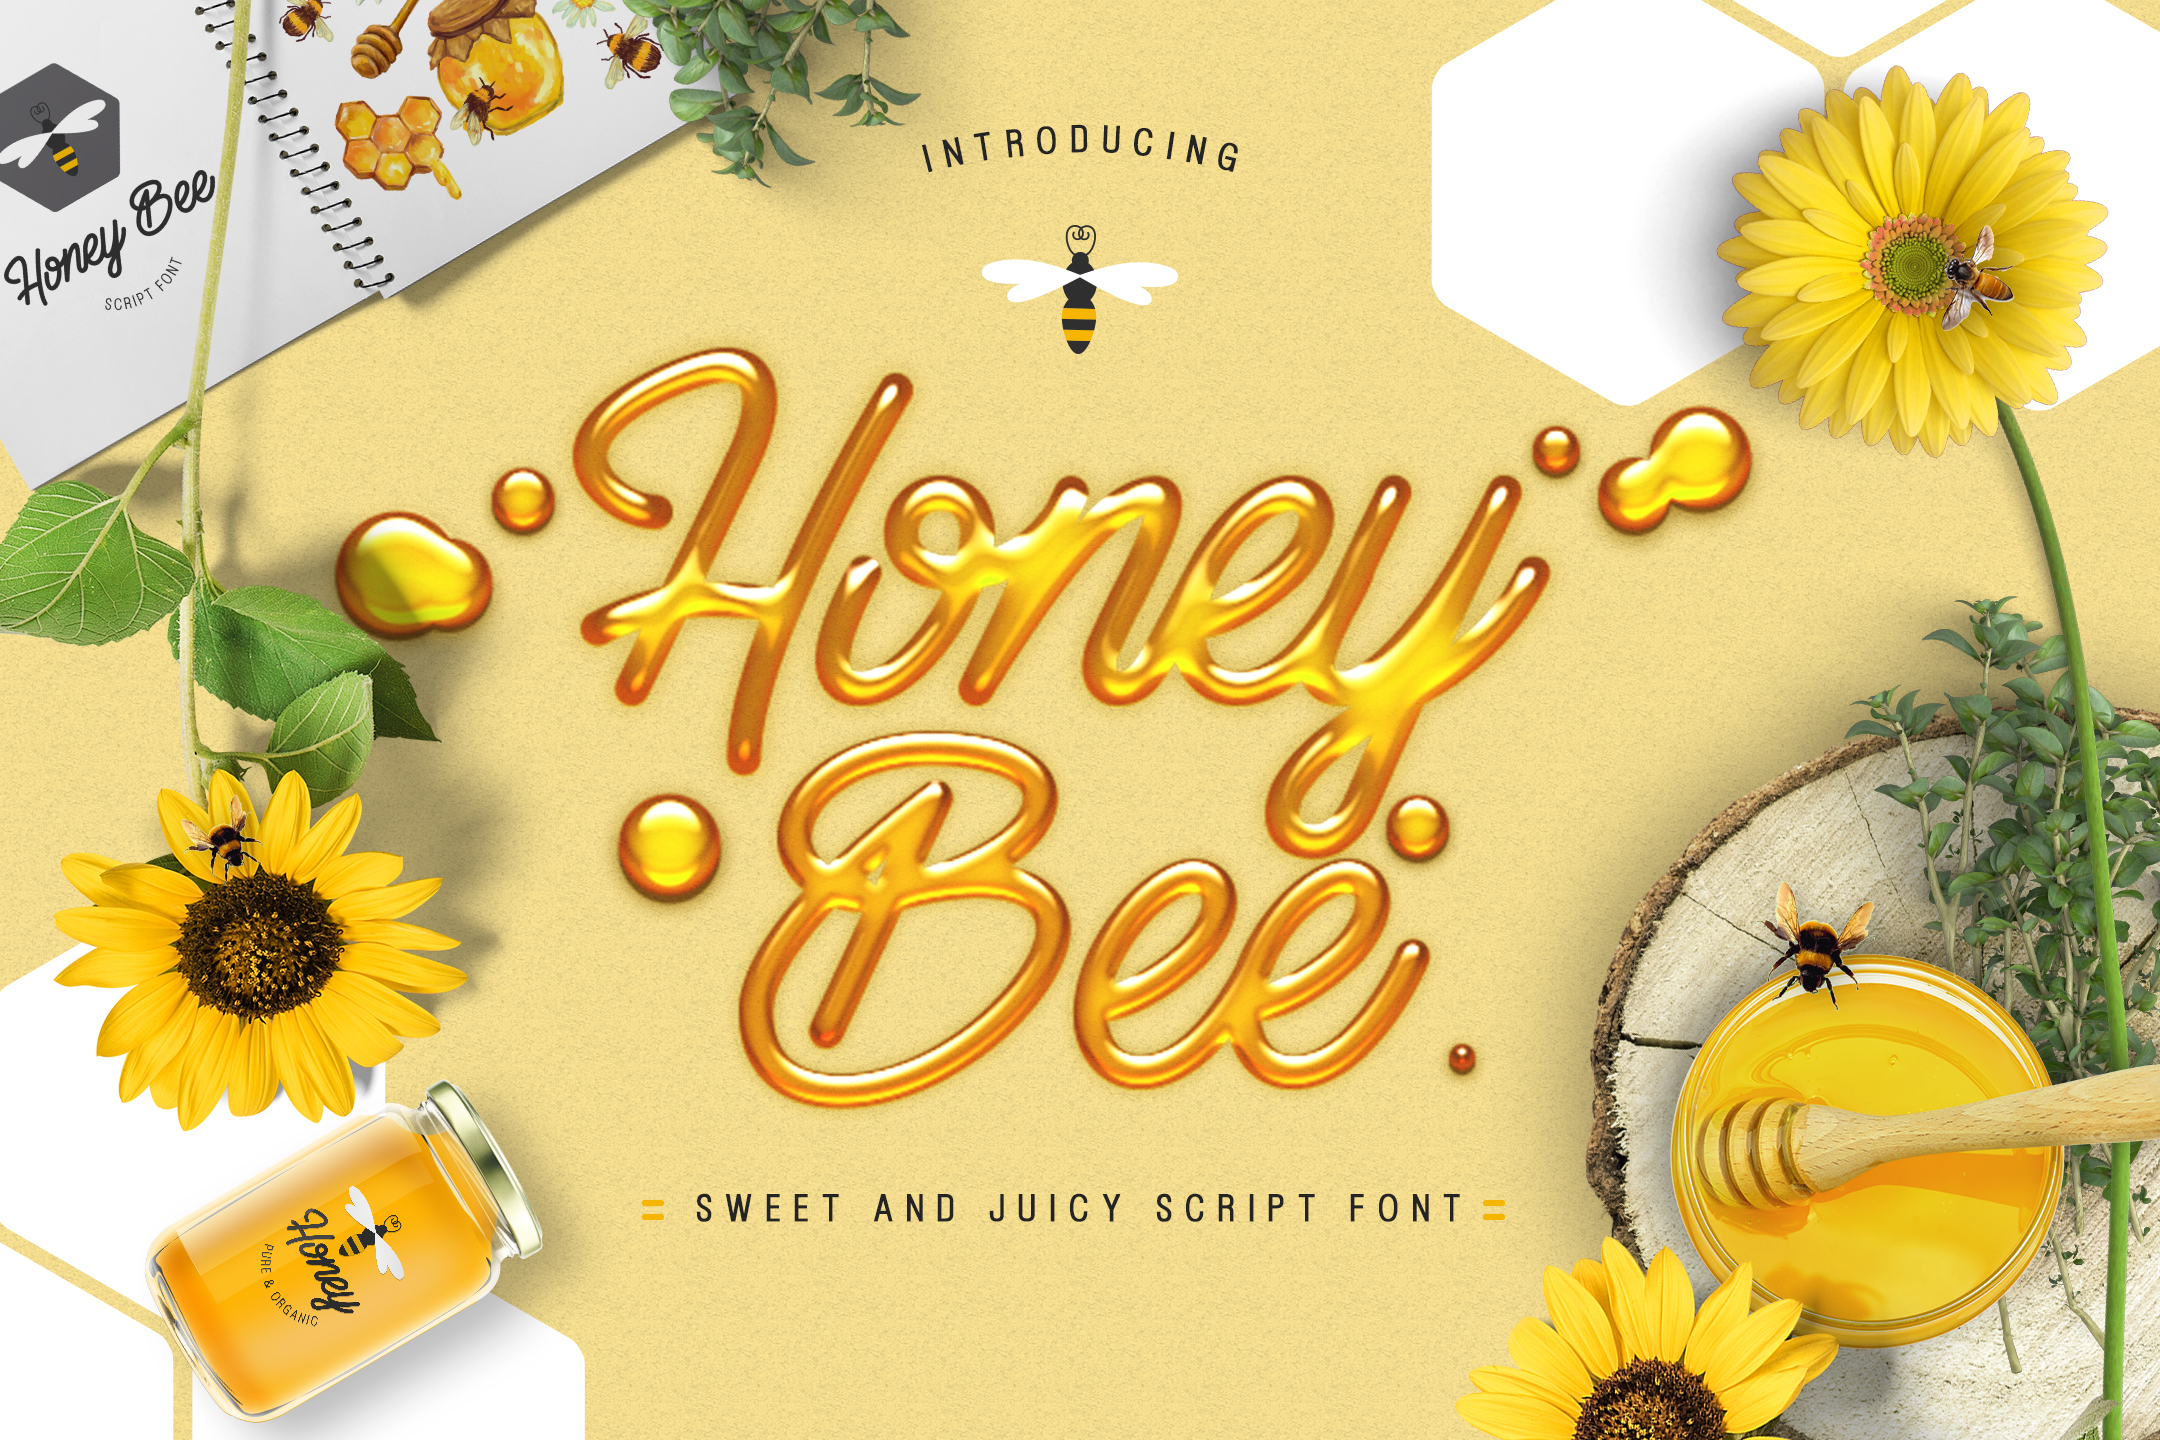 Honey Bee example 1